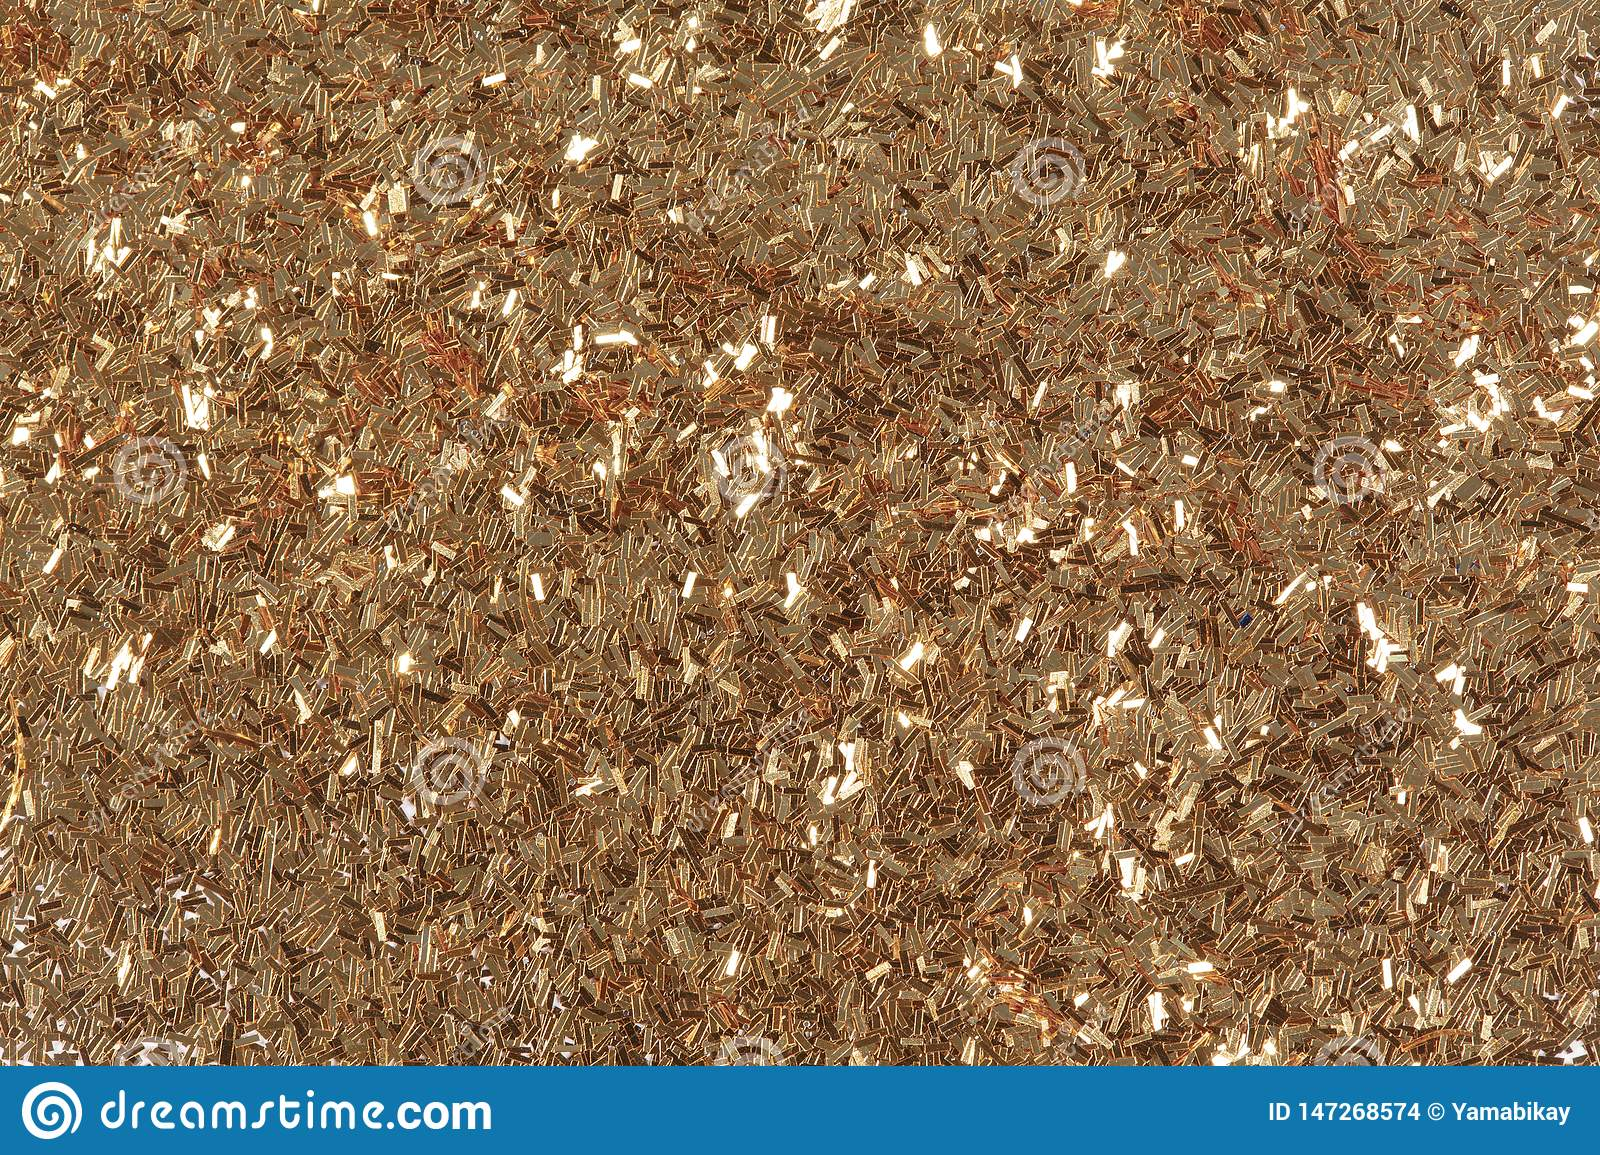 Golden glitter texture, abstract background. Bright exclusive texture, pattern. Low contrast photo.